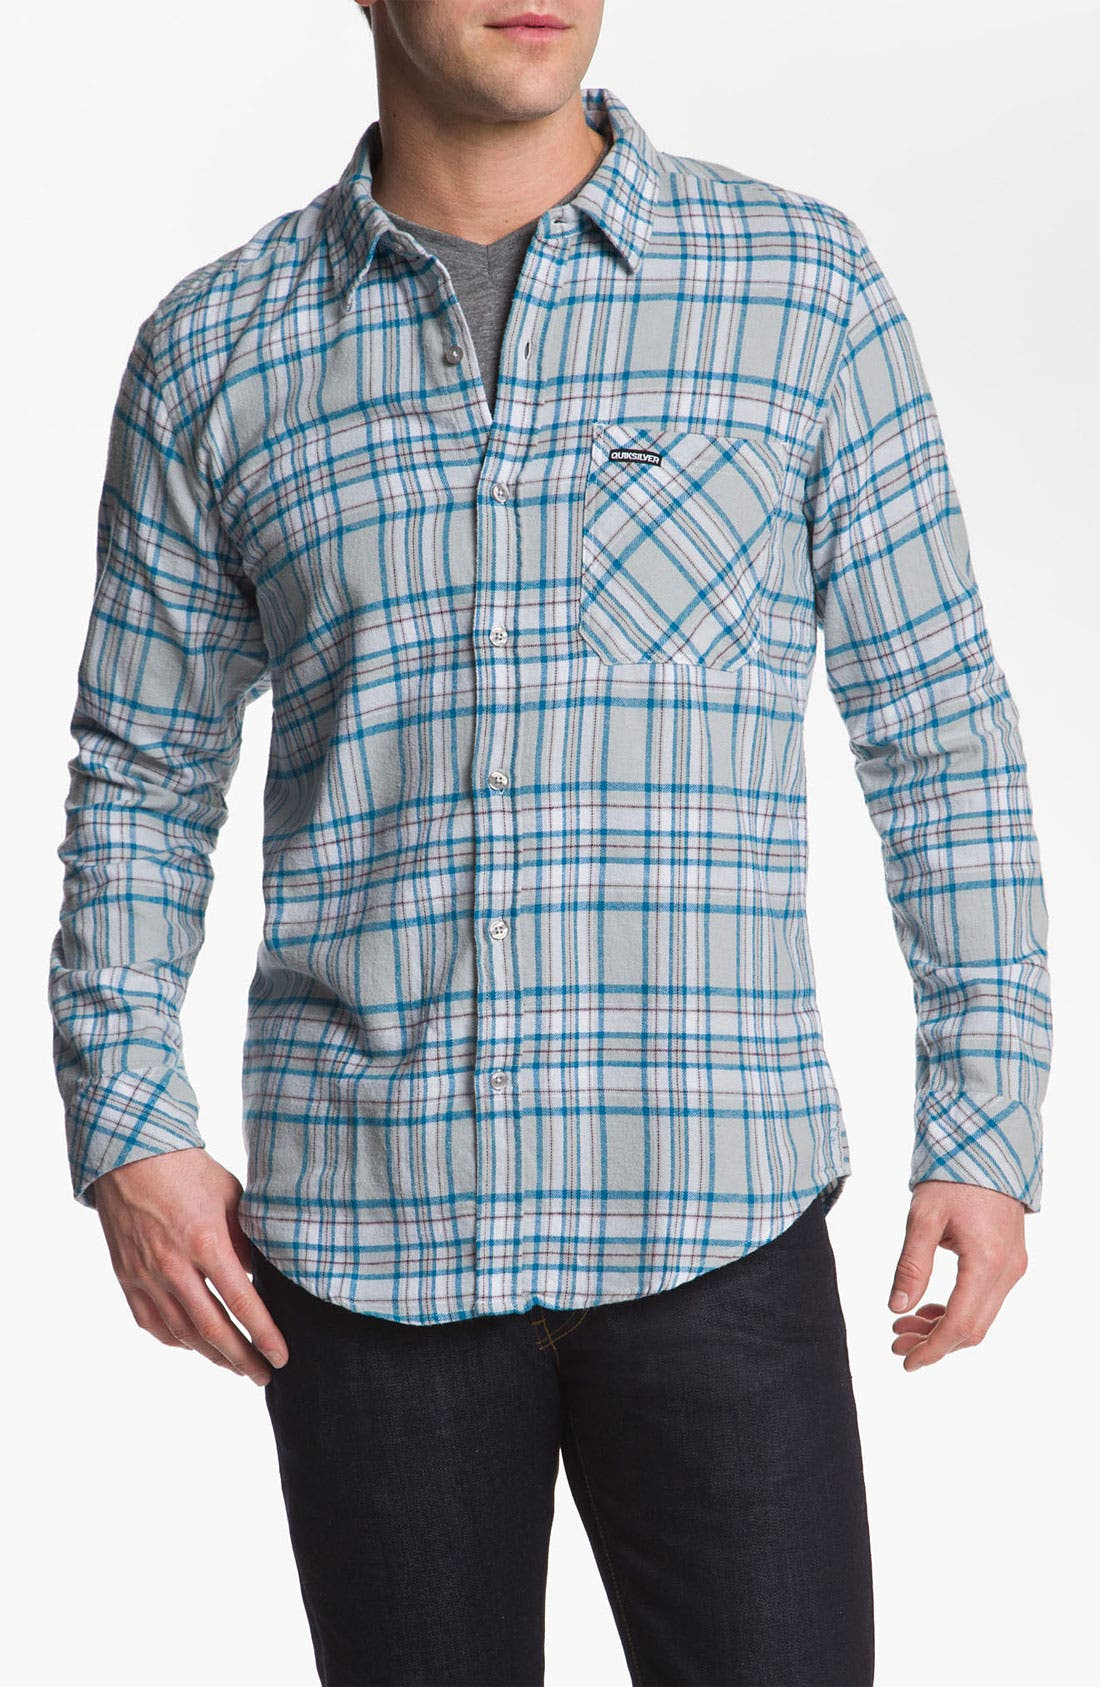 Alternate Image 1 Selected - Quiksilver 'Bunga Bunga' Cotton Flannel Shirt